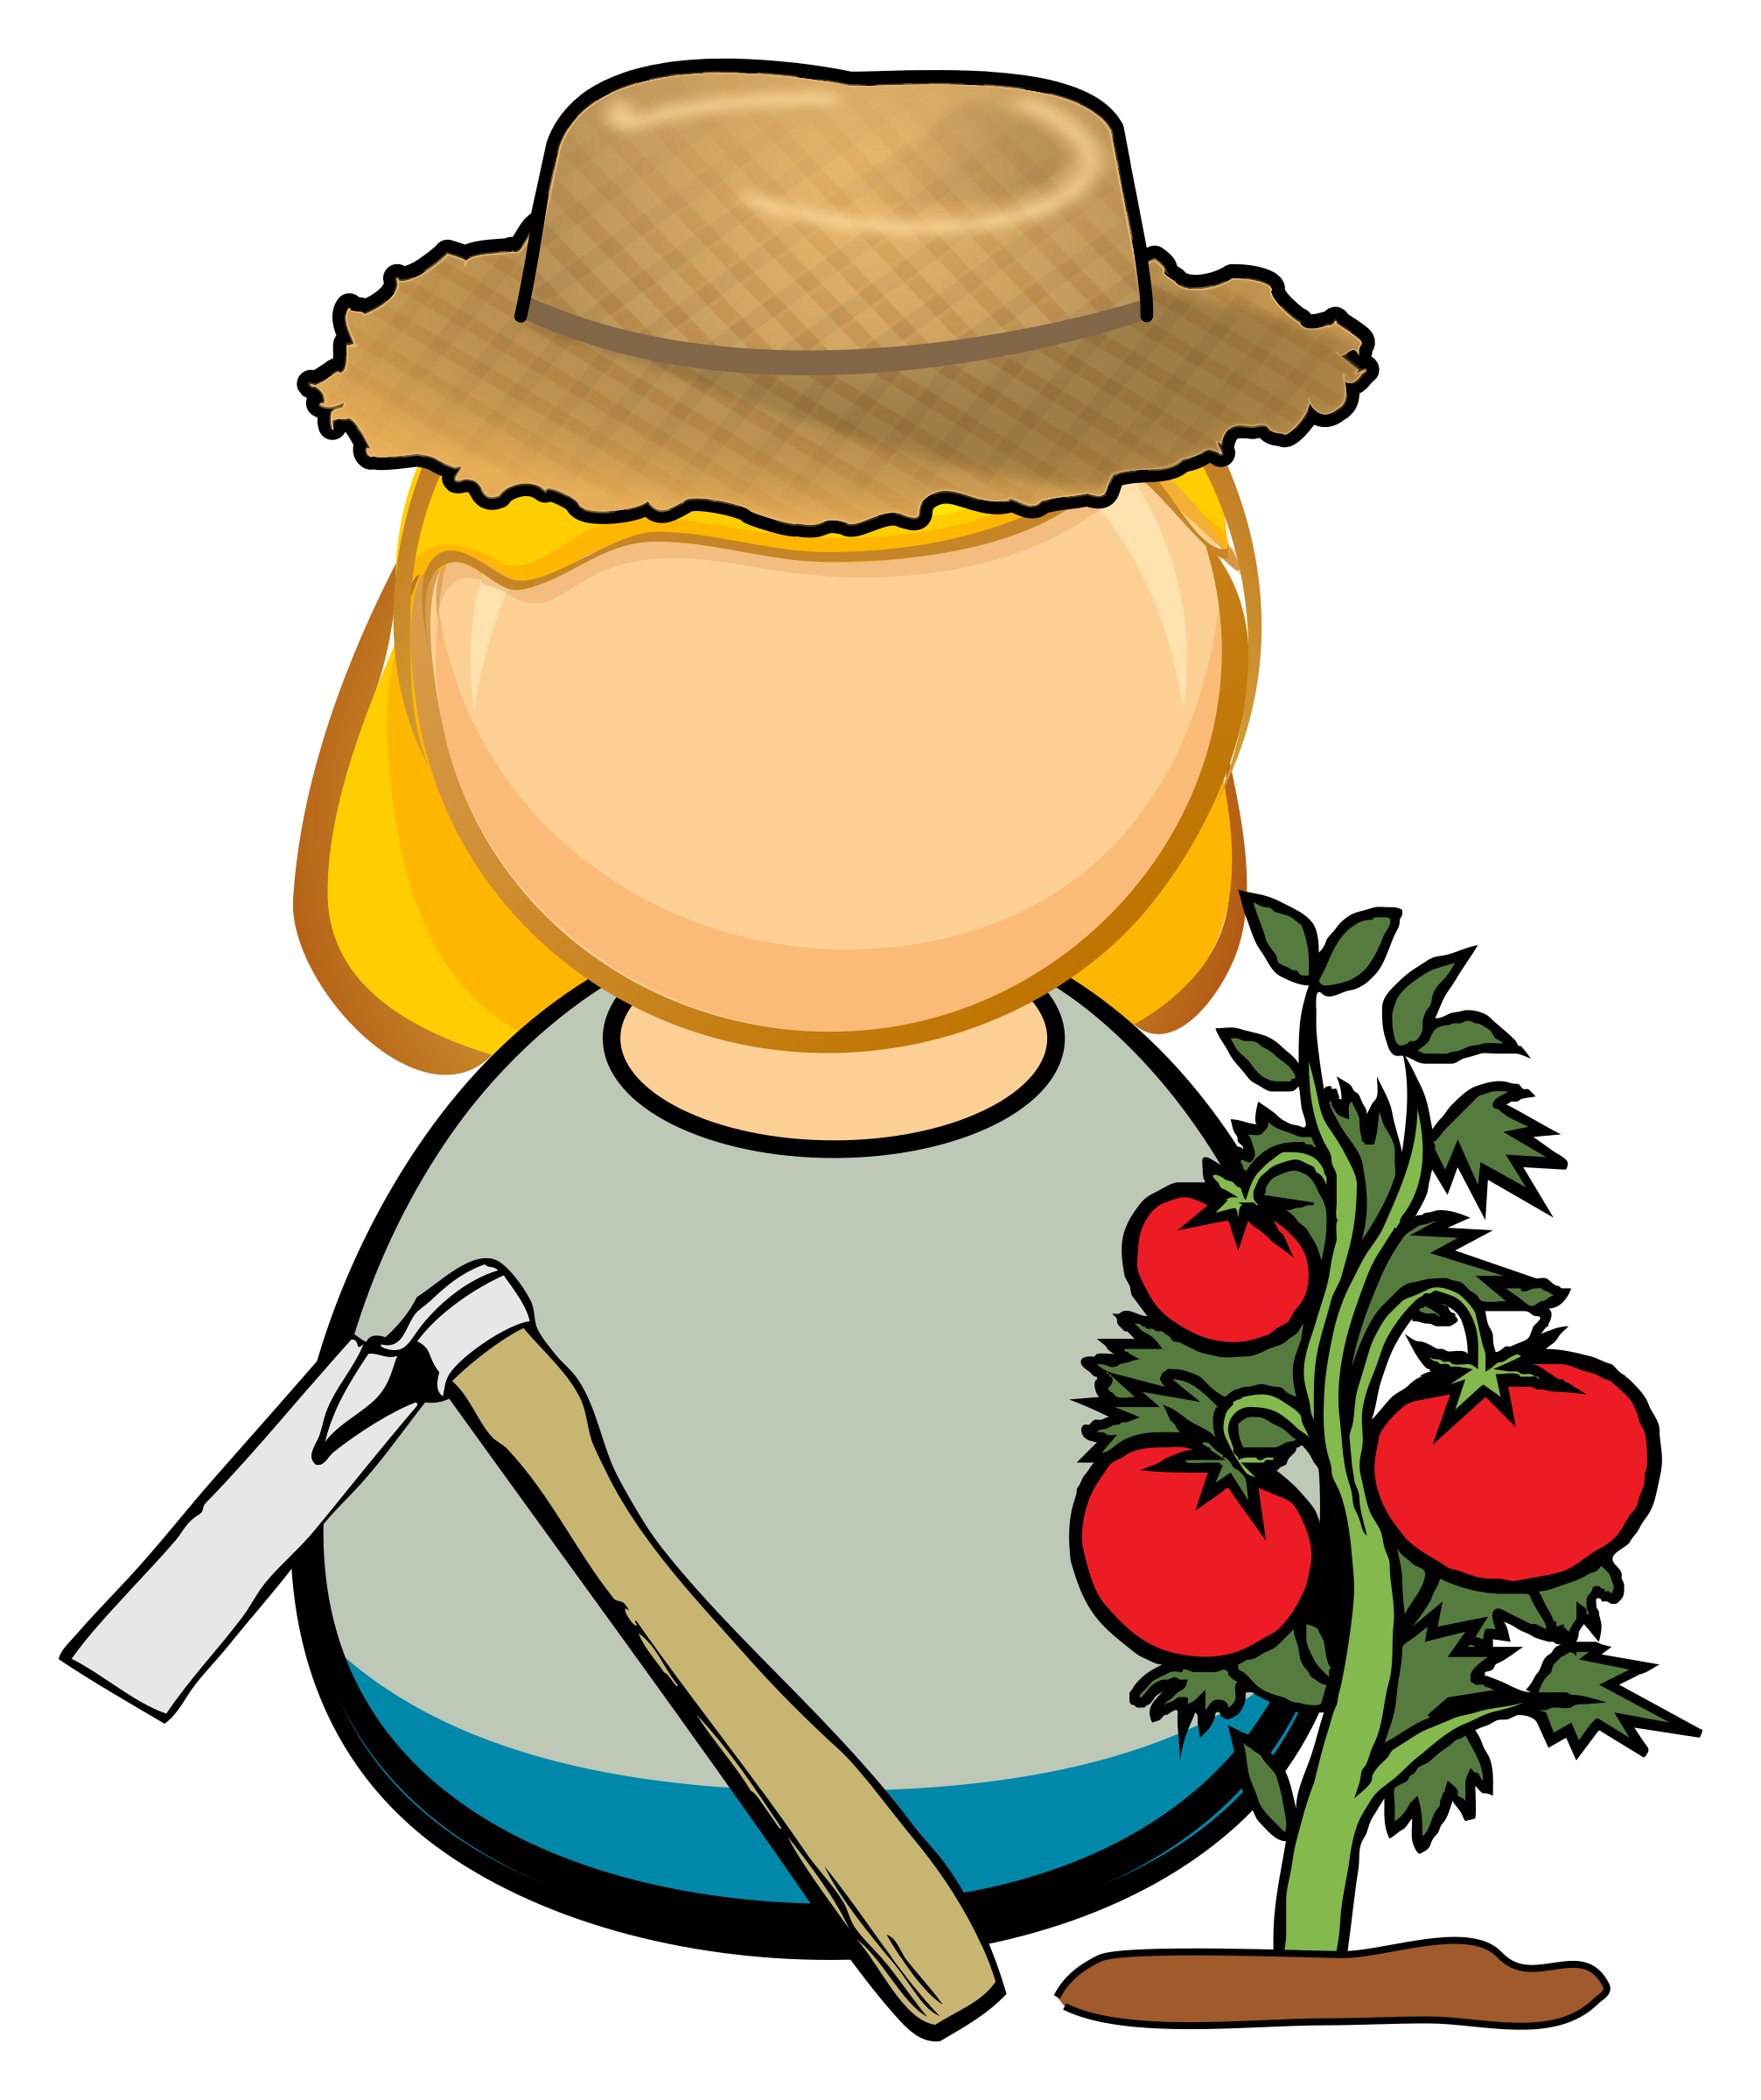 Witch clipart kawaii. Vegetable grower big image